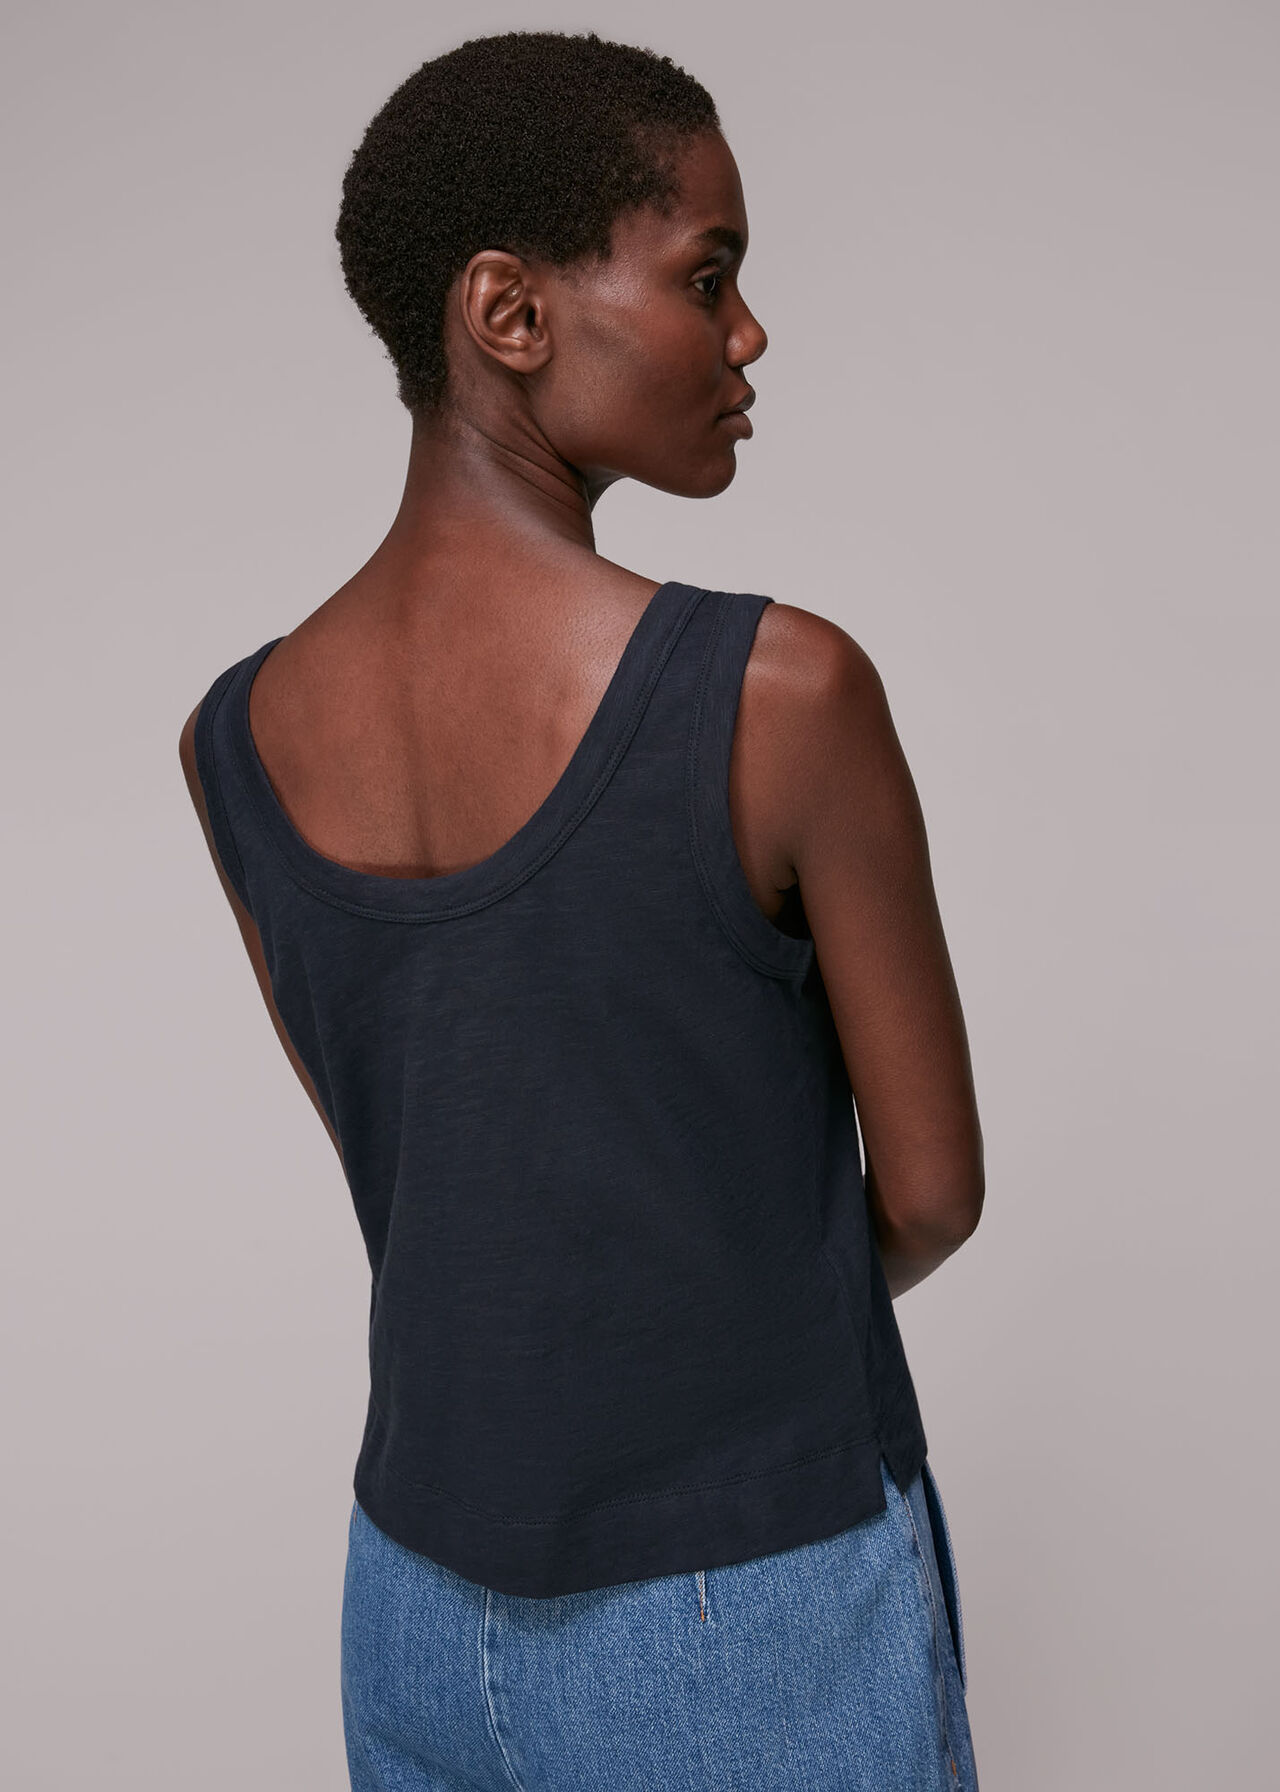 Reversible Button Up Tank Top